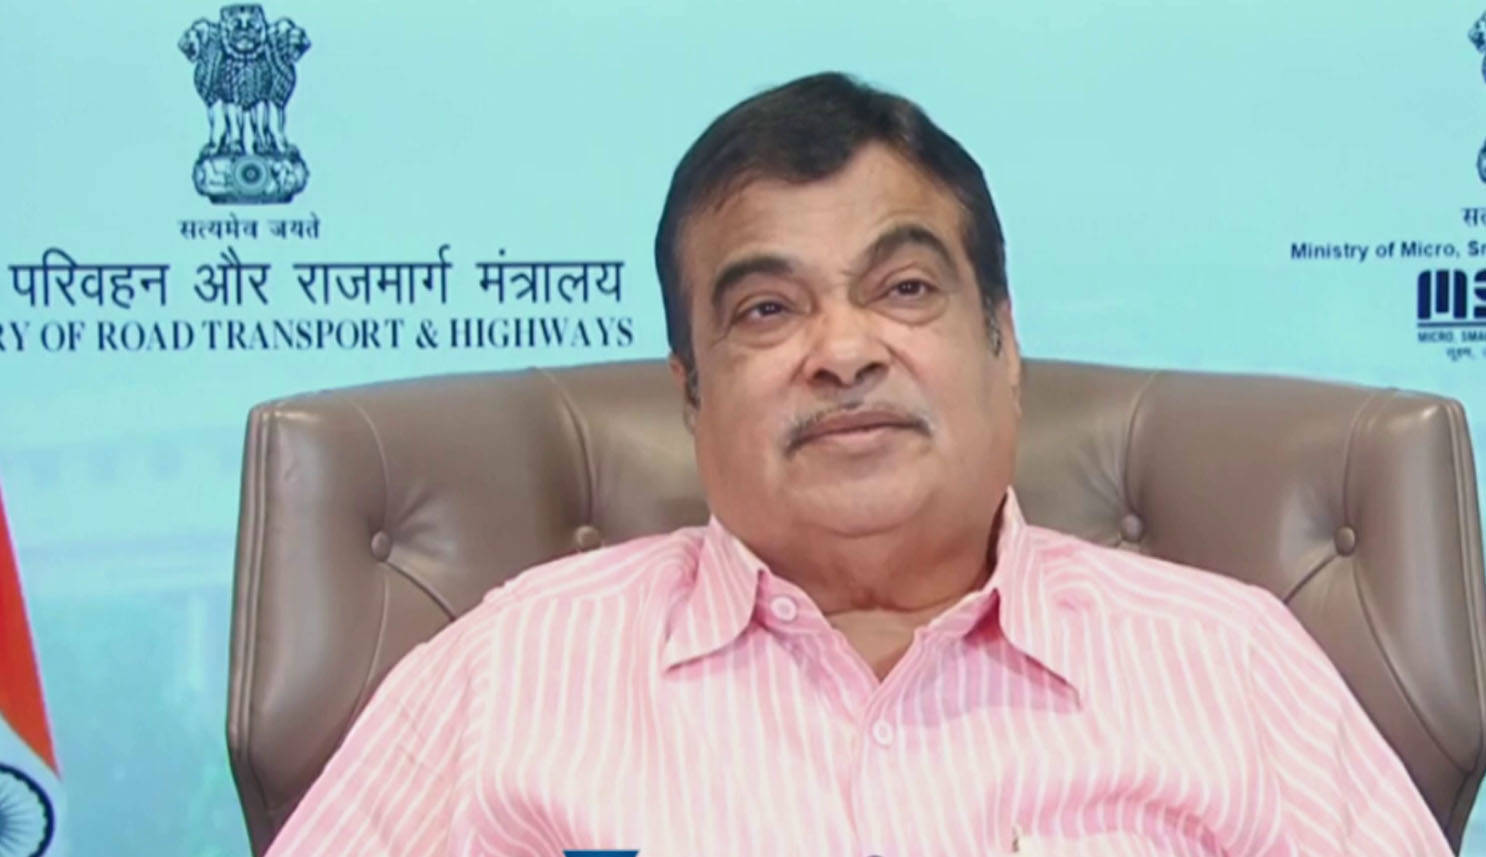 aim-is-to-increase-gdp-agriculture-growth-rate-nitin-gadkari